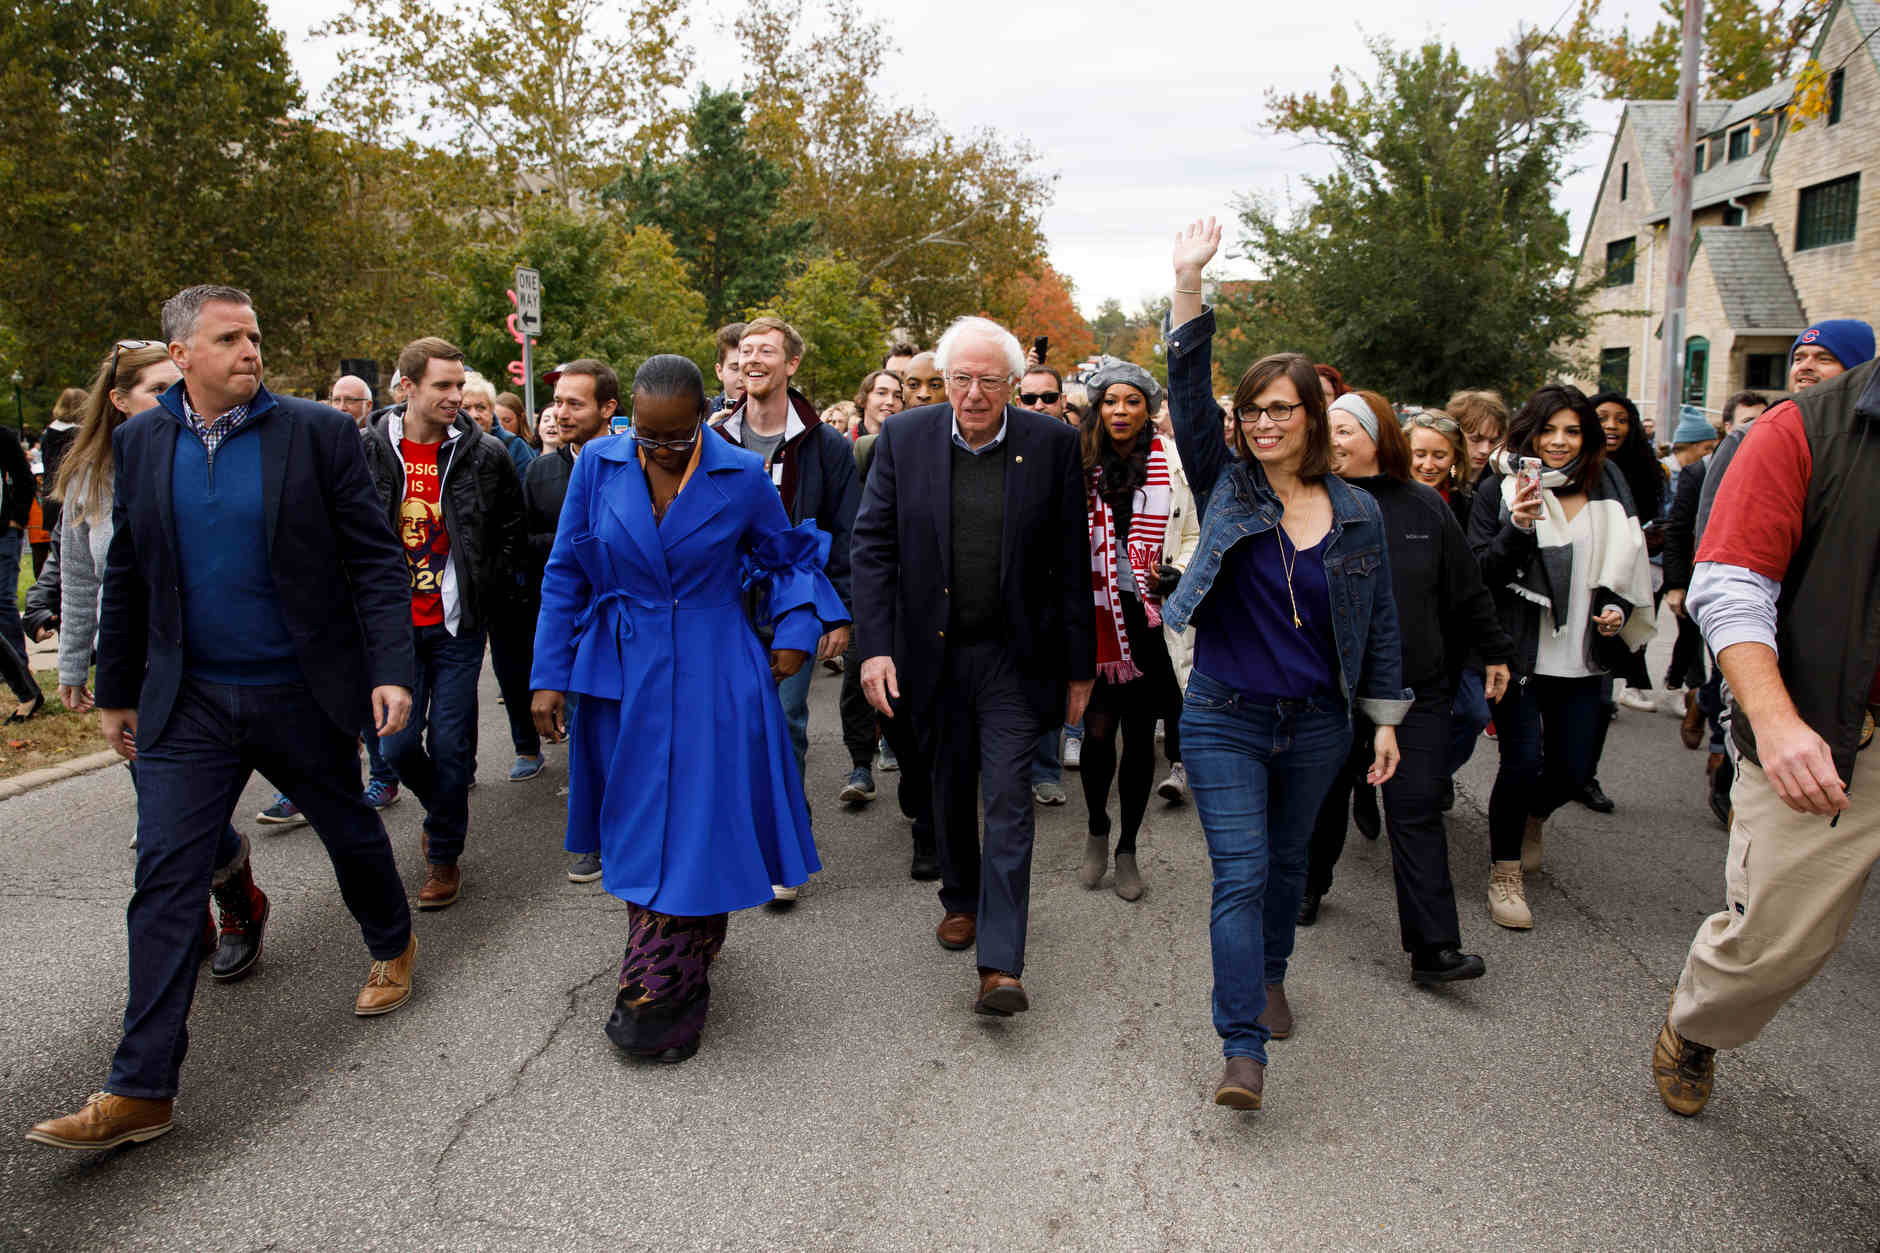 U.S. Sen. Bernie Sanders, I-VT, center, leads a march to an early voting polling place after a rally for Liz Watson, right, the Democratic nominee for Indiana's 9th congressional district, in Dunn Meadow at Indiana University Bloomington on Friday, Oct. 19, 2018. (James Brosher/IU Communications)